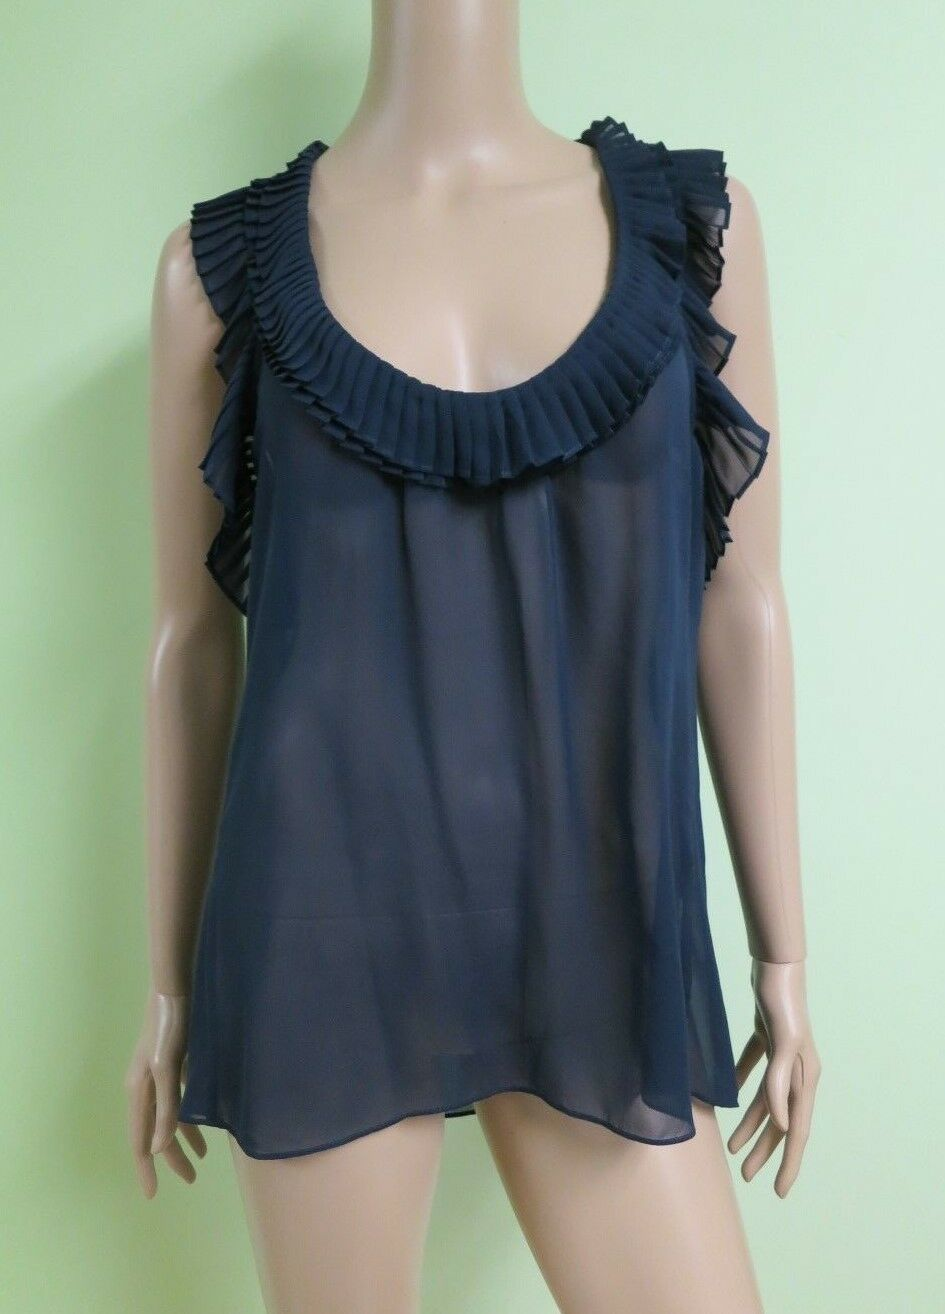 BCBG NWT Navy bluee Sleeveless Pleated Ruffle 100%Silk Shirt Top New M SIL1G340